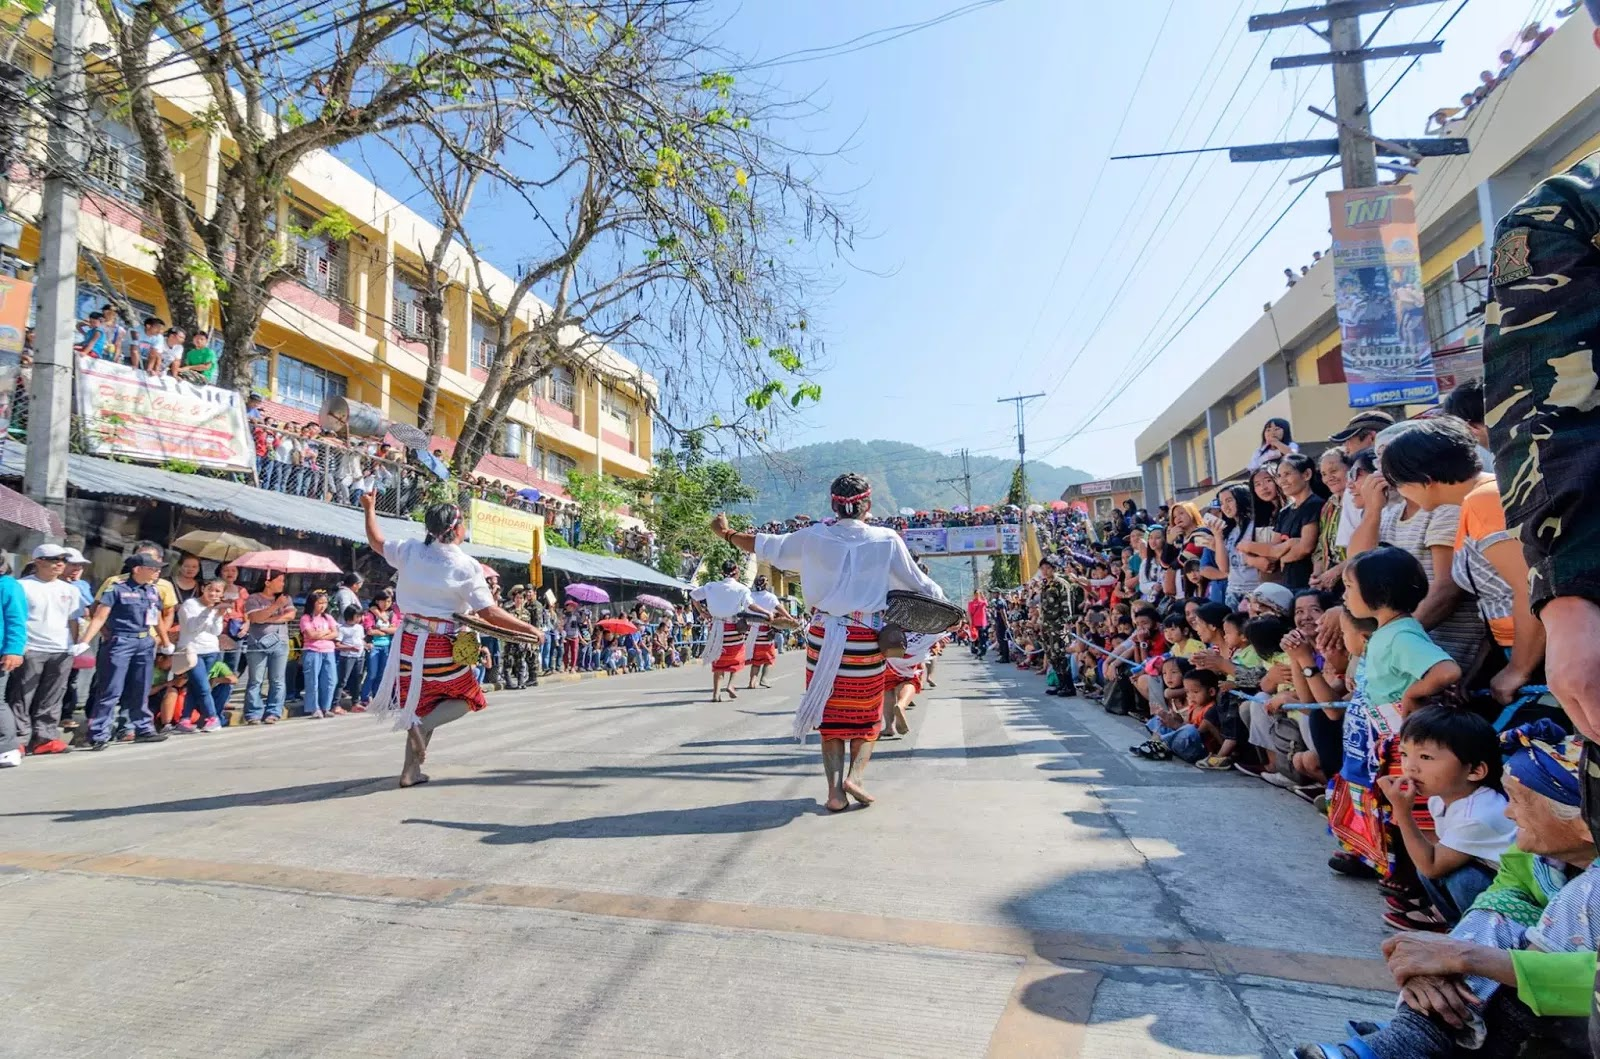 Bontoc Mountain Province 13th lang-Ay Festival Street Dancing in the Streets Tailend.